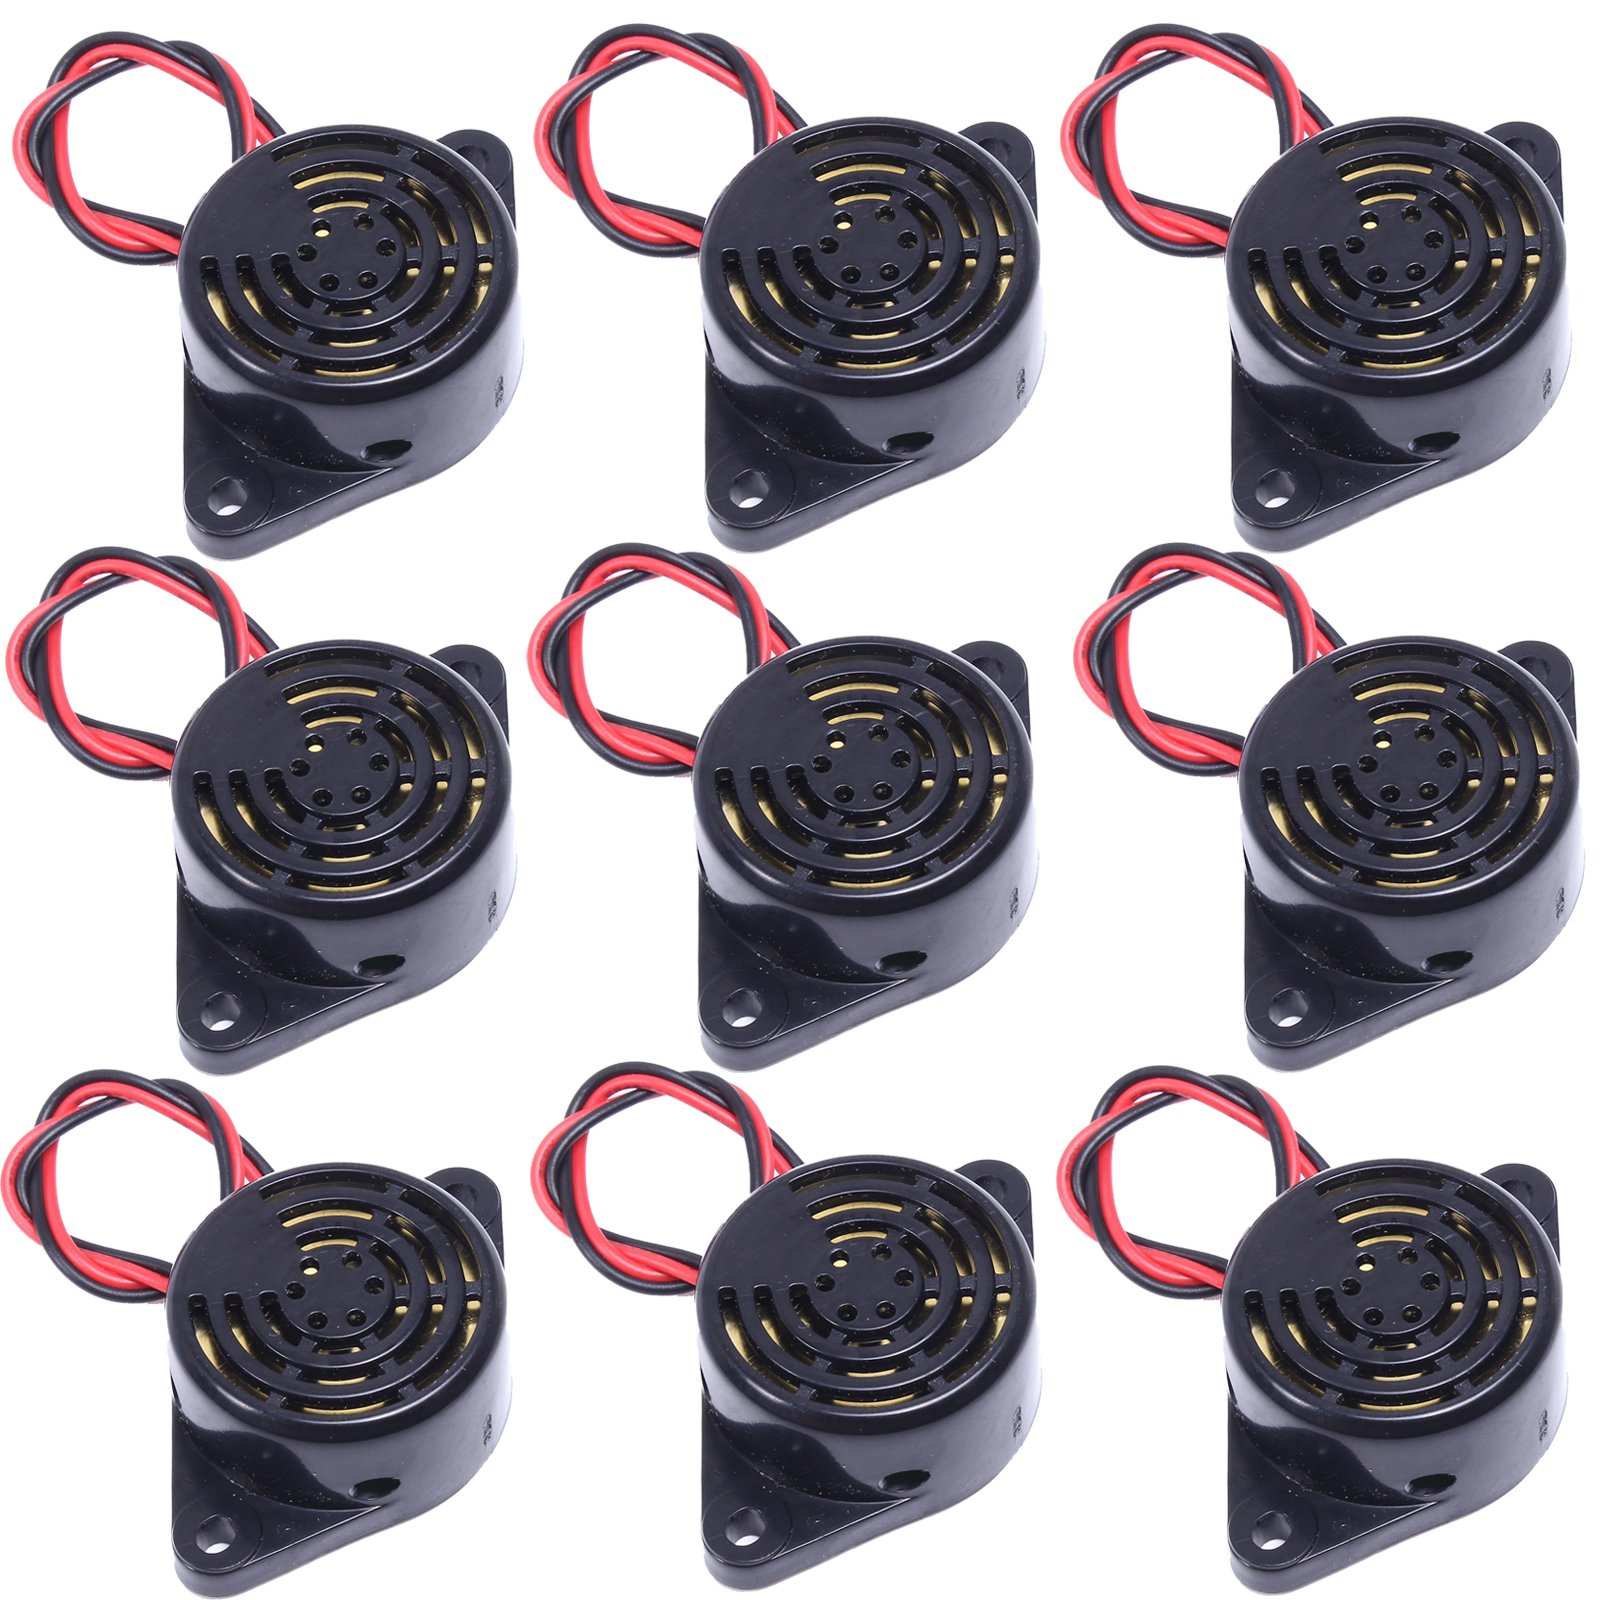 Buy 2 X Piezo Electronic Tone Buzzer Alarm 3 24v 12vdc With Mounting 12v Waterproof Electric Sounder Icstation Dc 85db Active Beep Ringer Continous Sound Pack